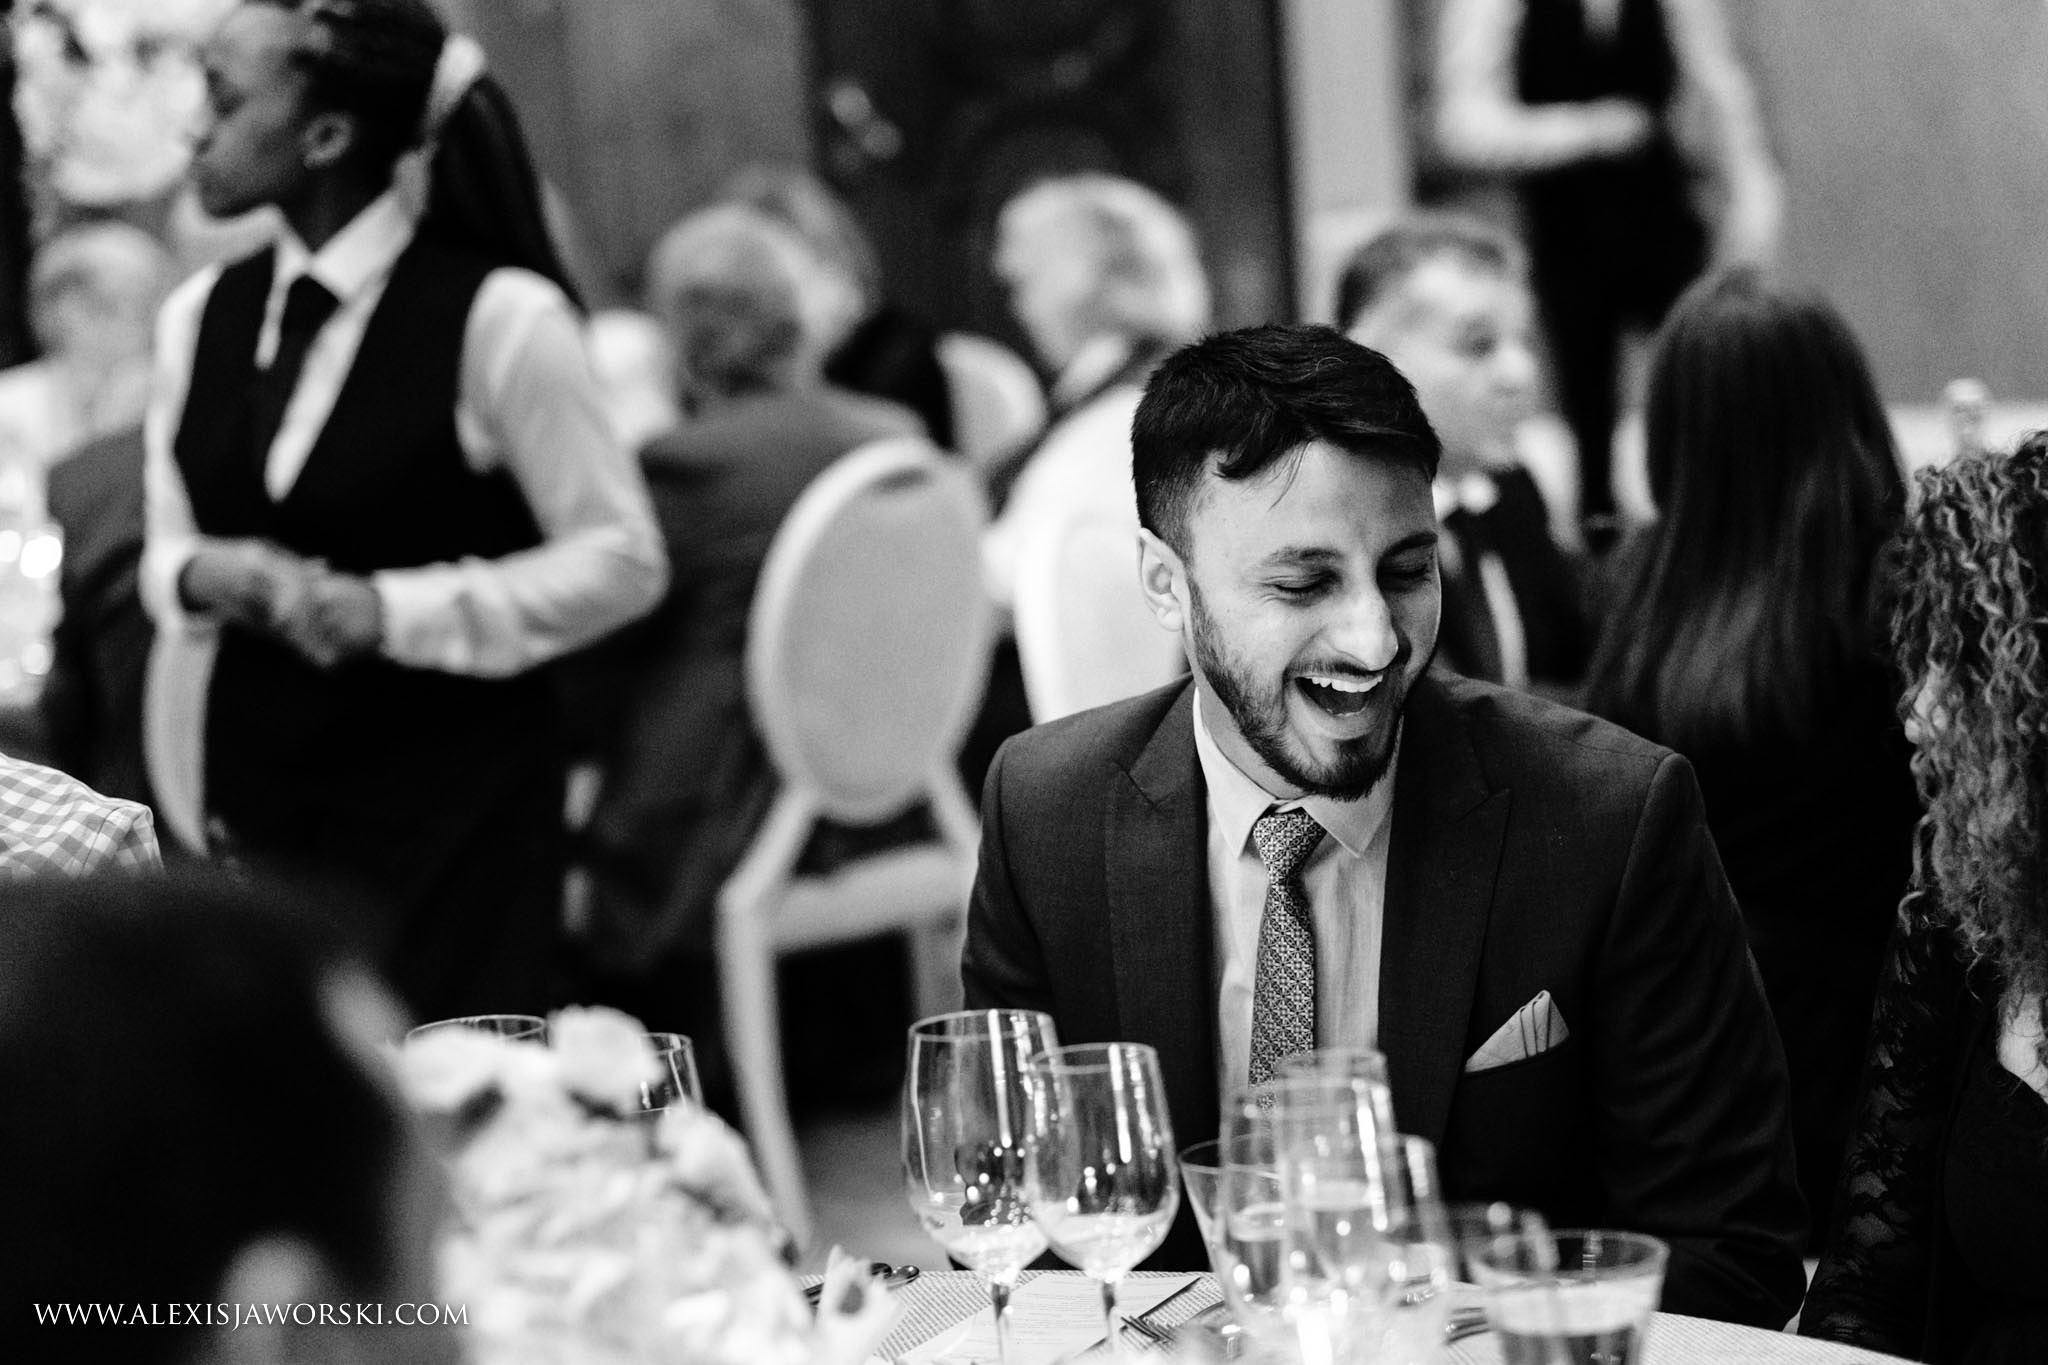 guests laughing during the meal